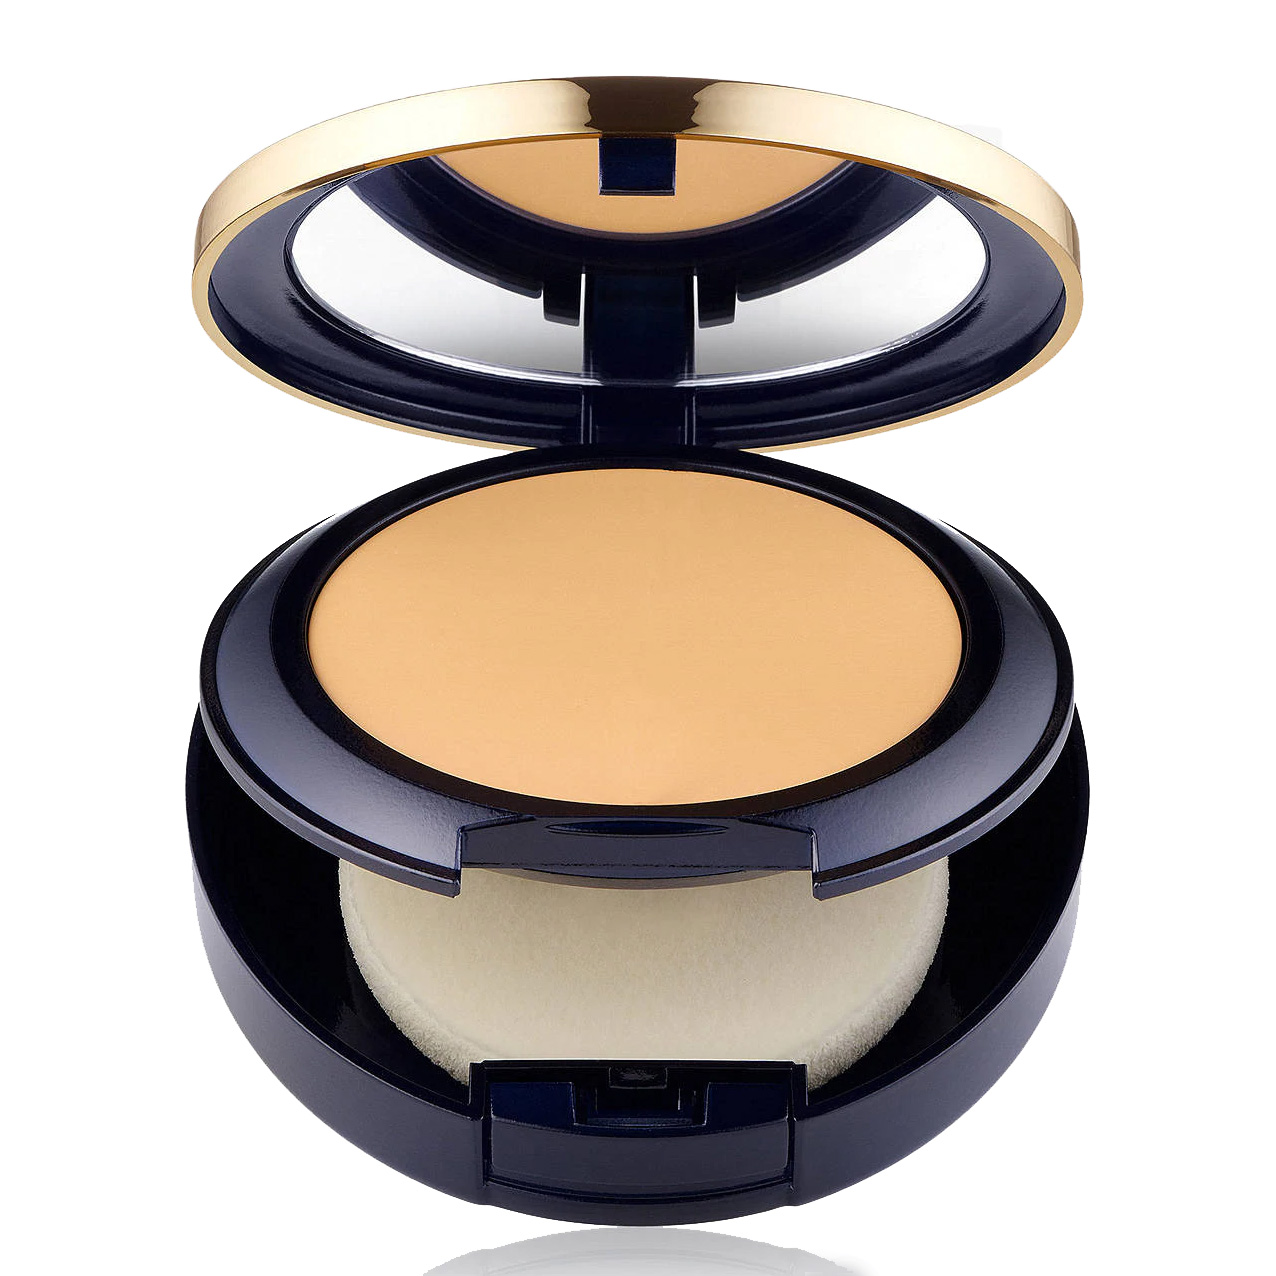 Estee Lauder Double Wear Stay in Place Matte Powder Foundation SPF10 n. 4N2 spiced sand